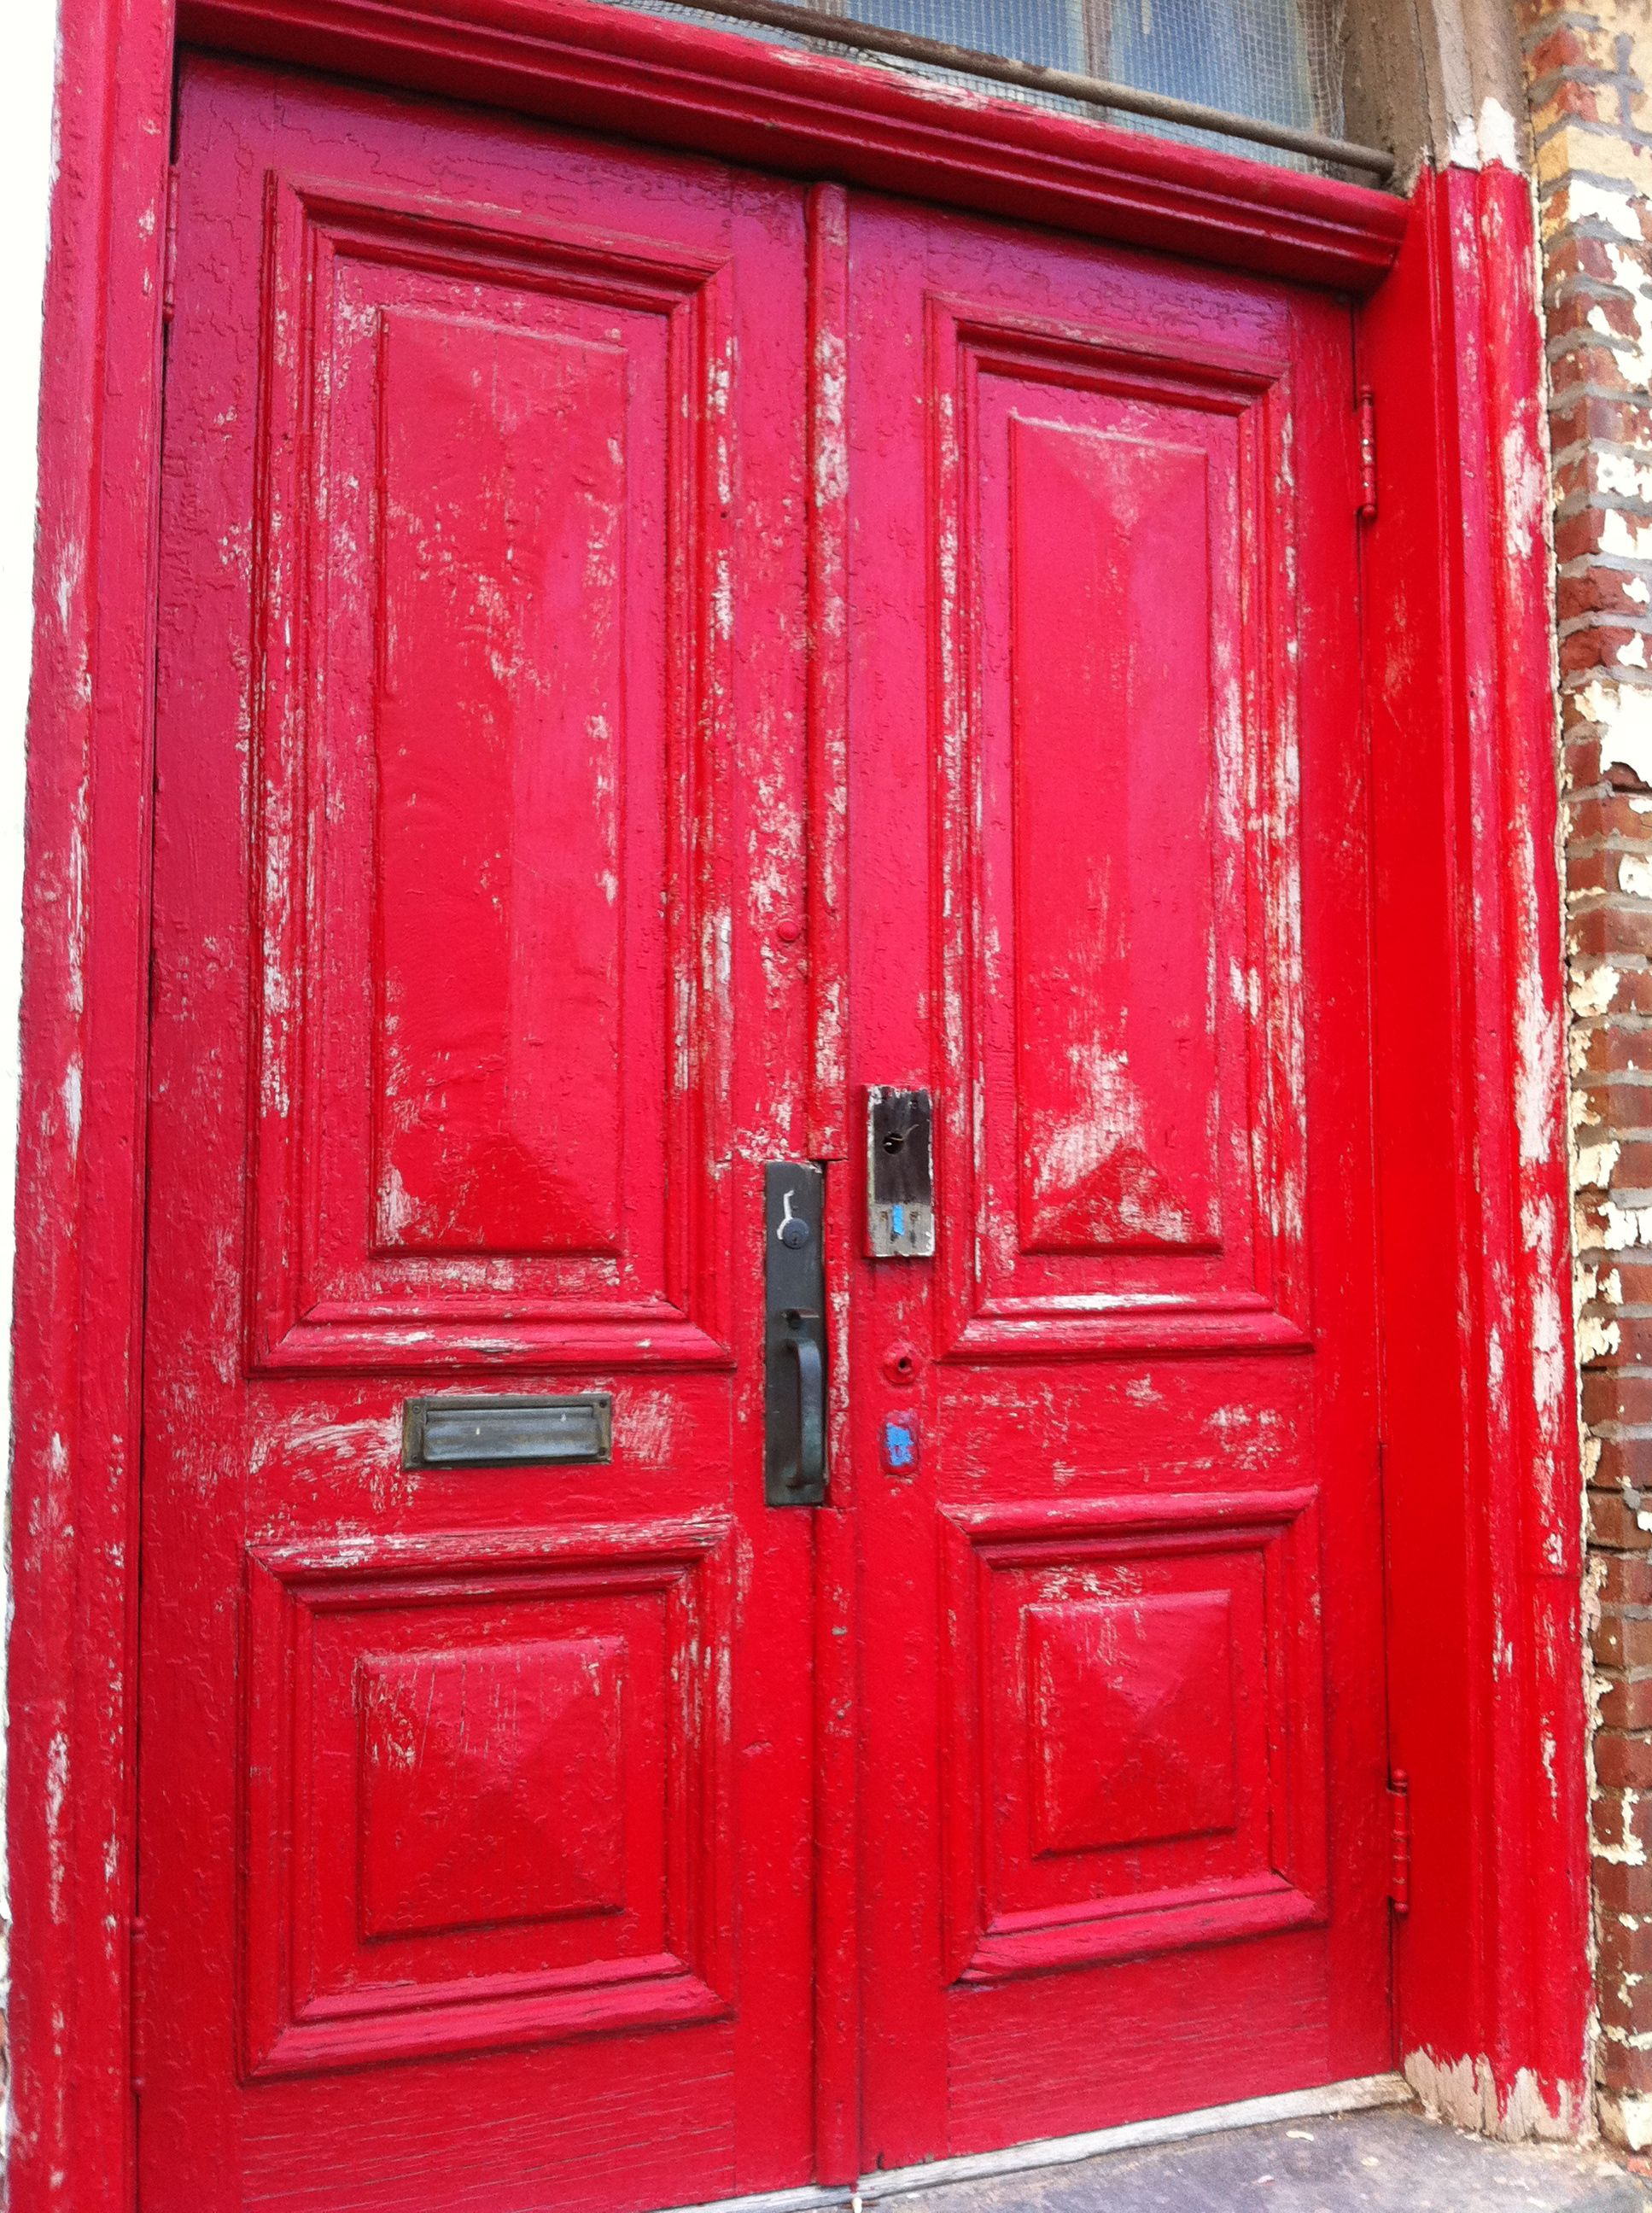 Old red doors. Kingston NY & Old red doors. Kingston NY | Kingston New York | Pinterest